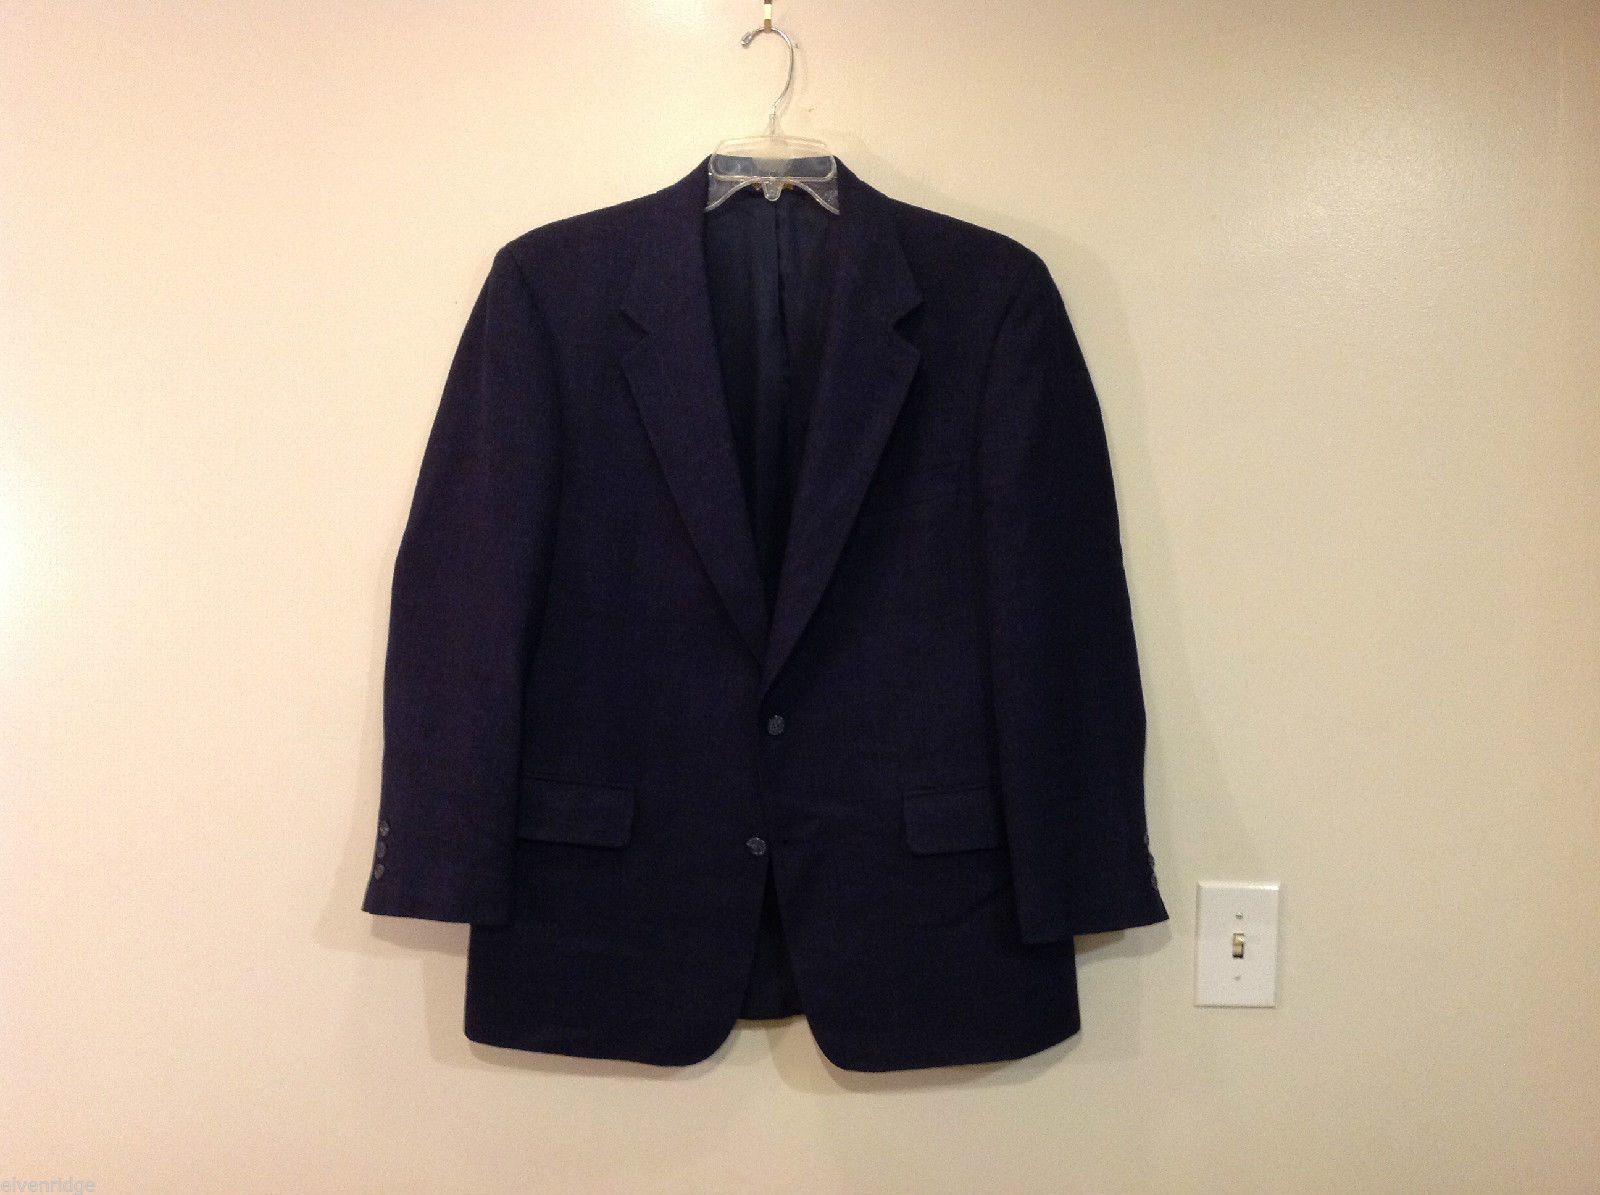 Brooks Brothers Two Buttons Navy Blue Suit Jacket, Size 42R